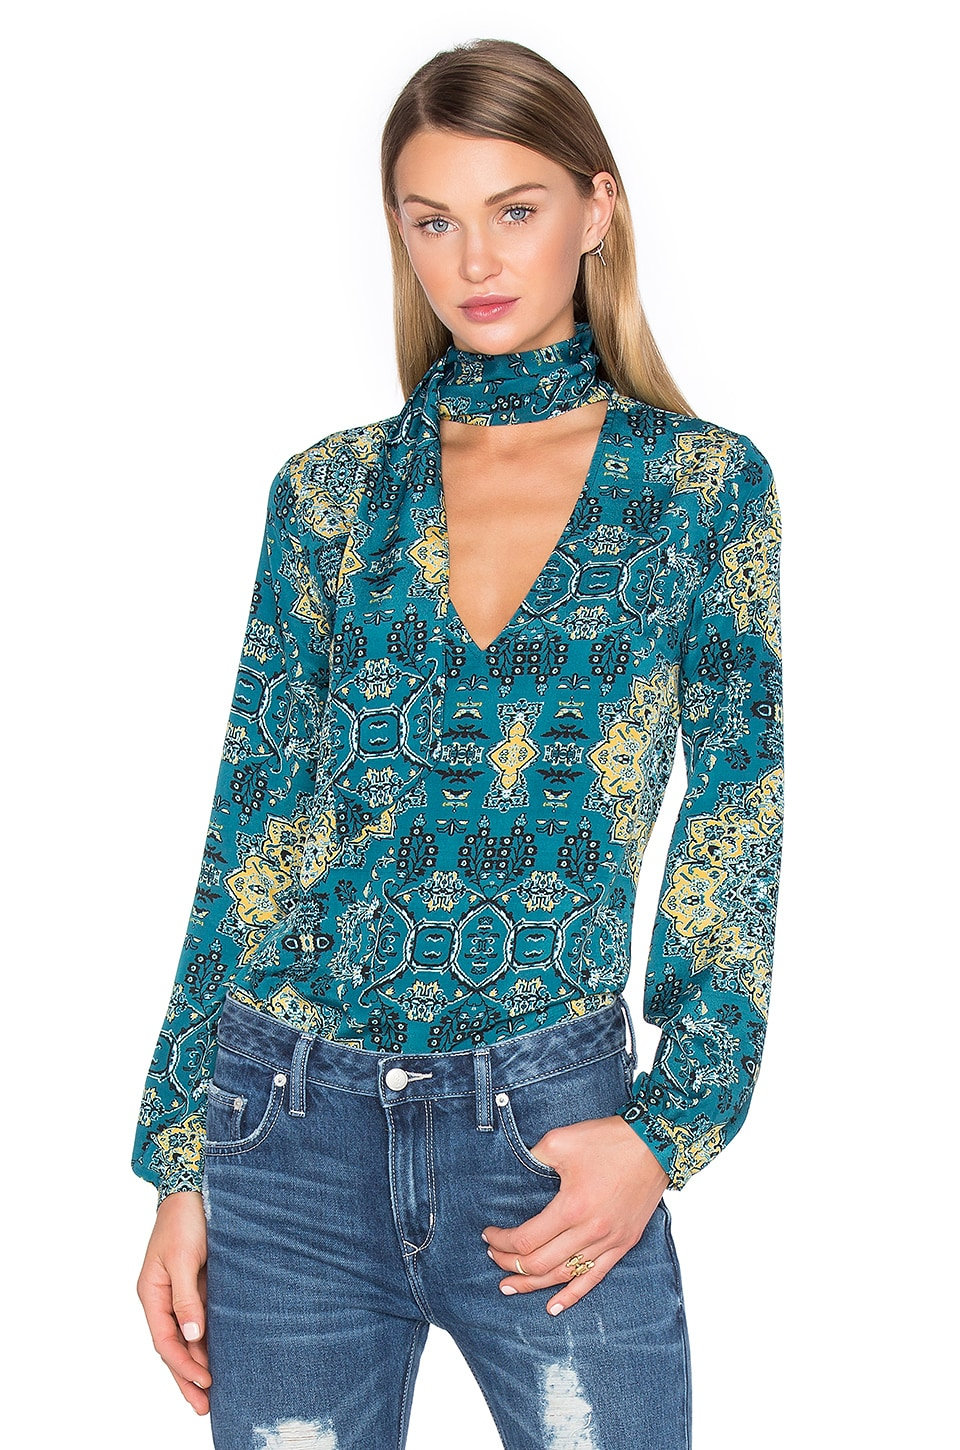 House of Harlow 1960 x REVOLVE Naomi Tie Neck Blouse in Moroccan Tile Print